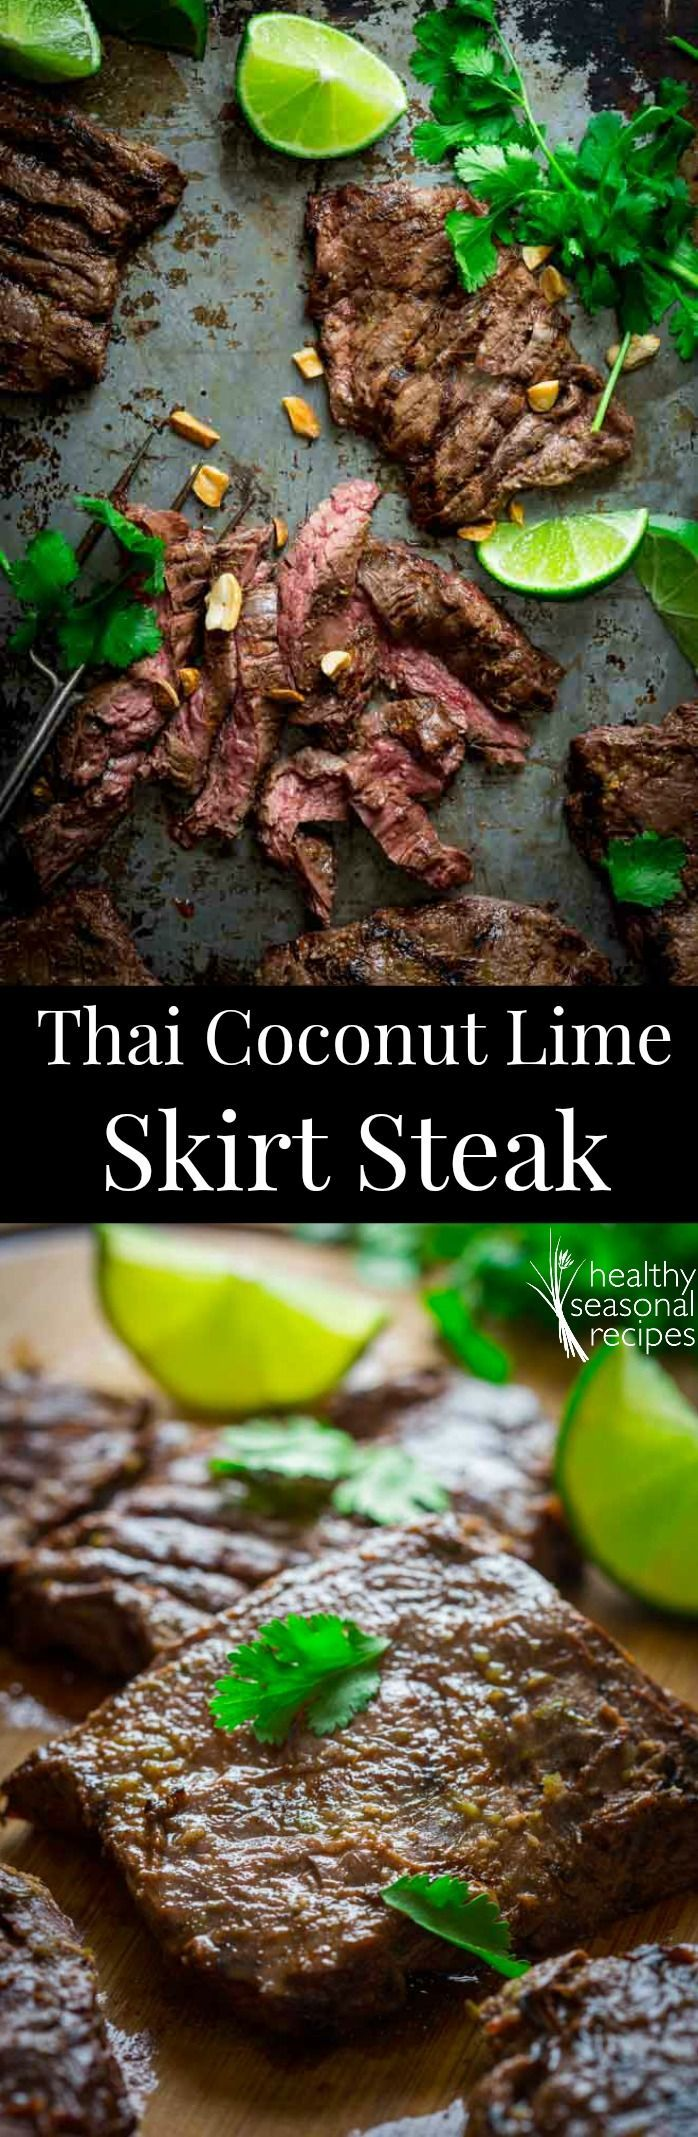 Steak    lime steak coconut Recipe and Skirt Steaks    Grilled max exclusive Coconut sneakers skirt thai   air